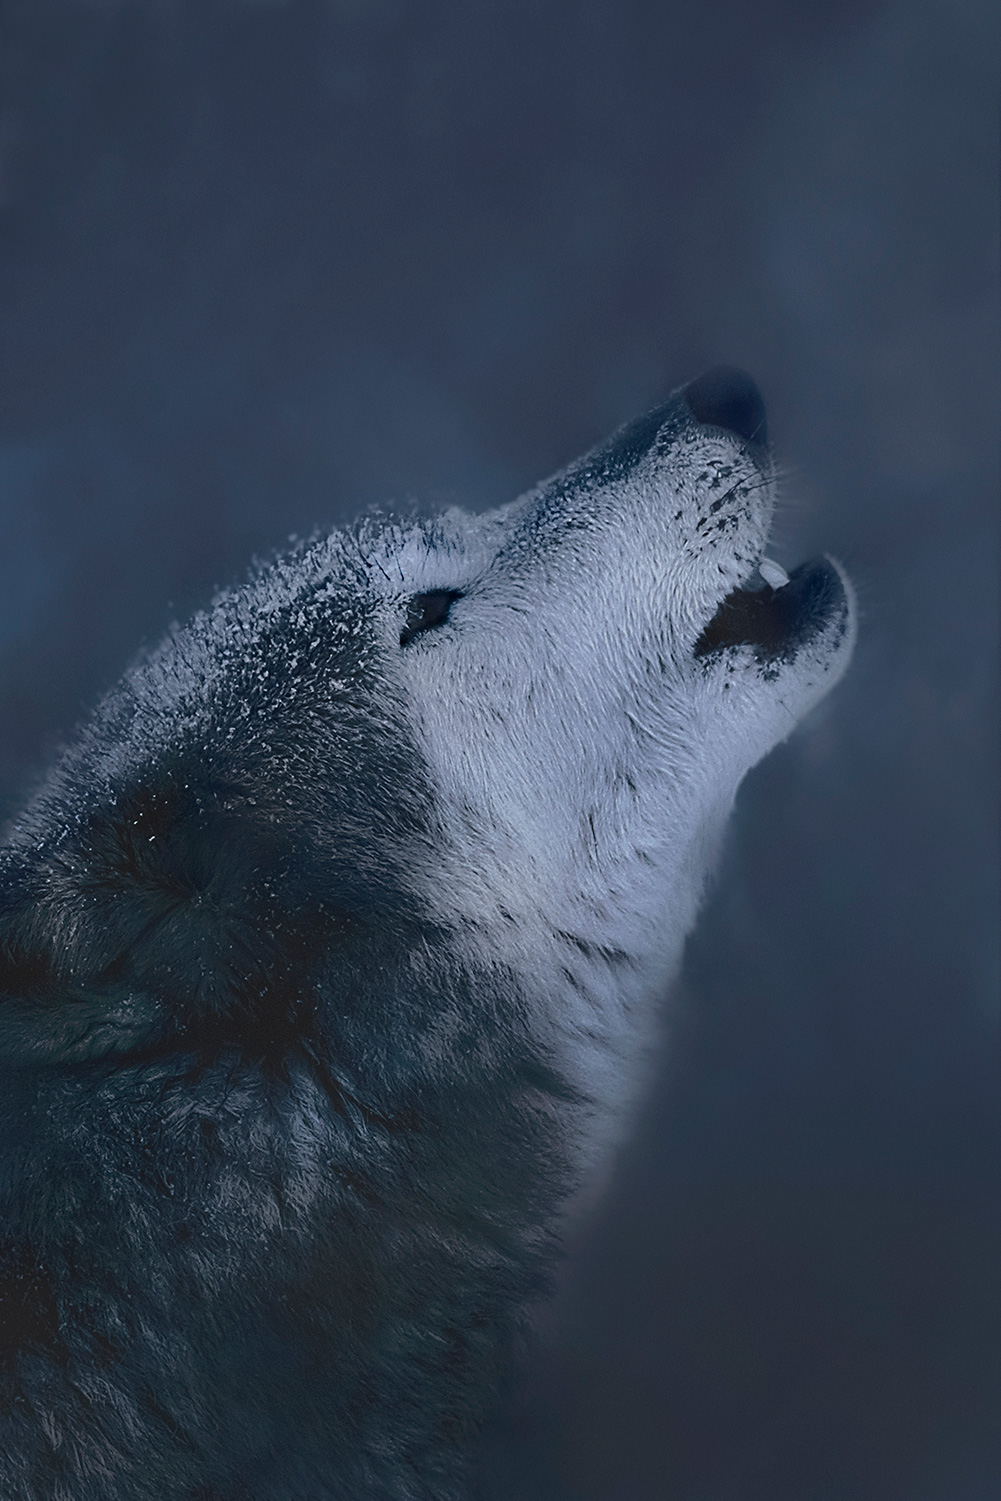 Adult wolf howling